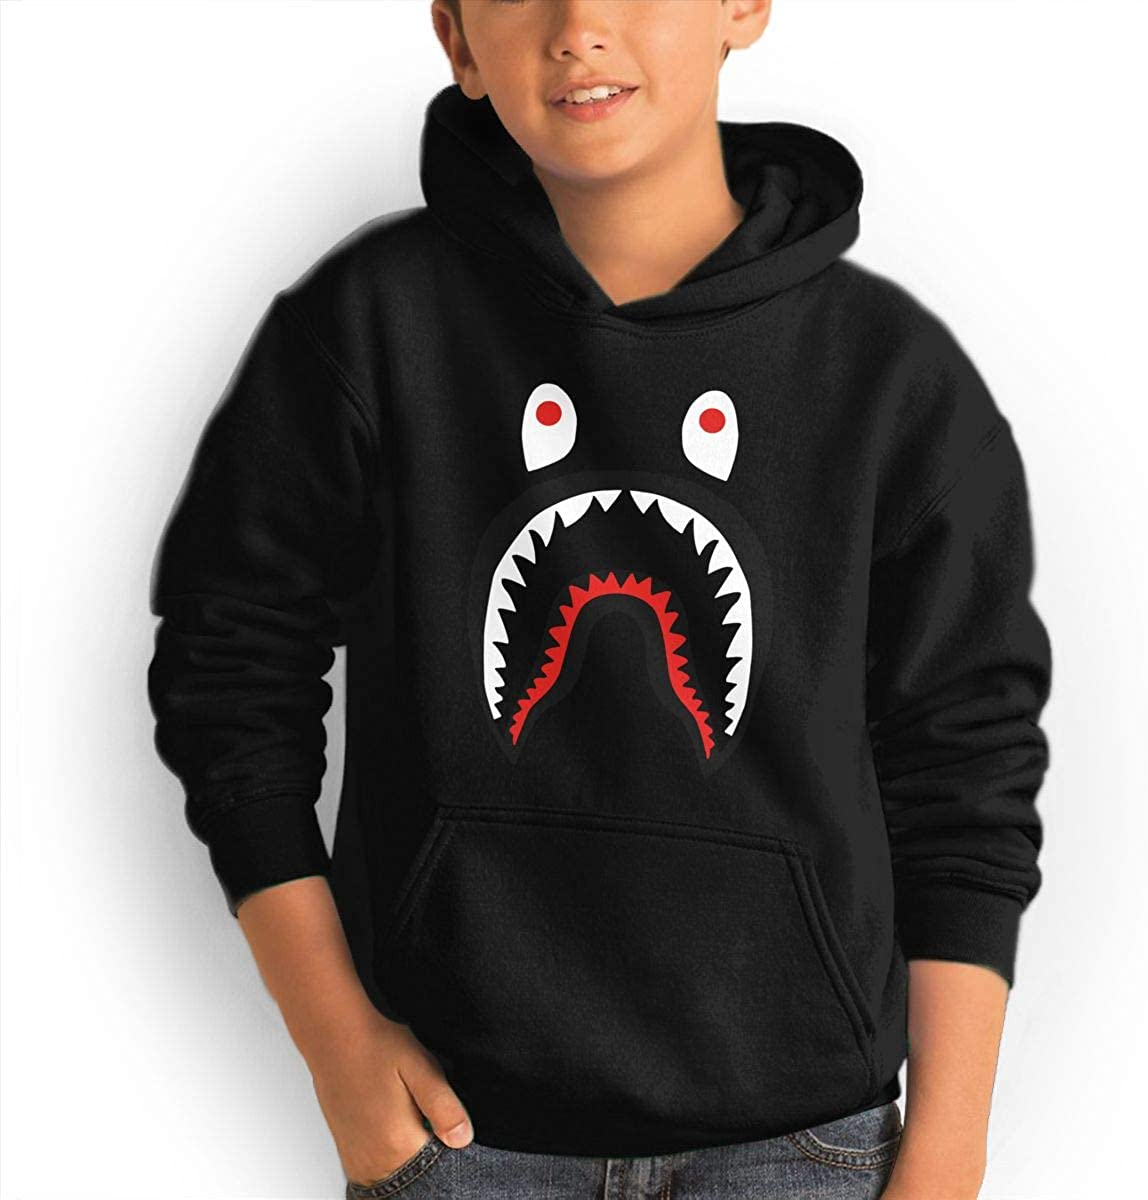 Trikahan Unisex Kid's/Youth Hoodie Bape Blood Shark Novelty Pullover Sweatshirt